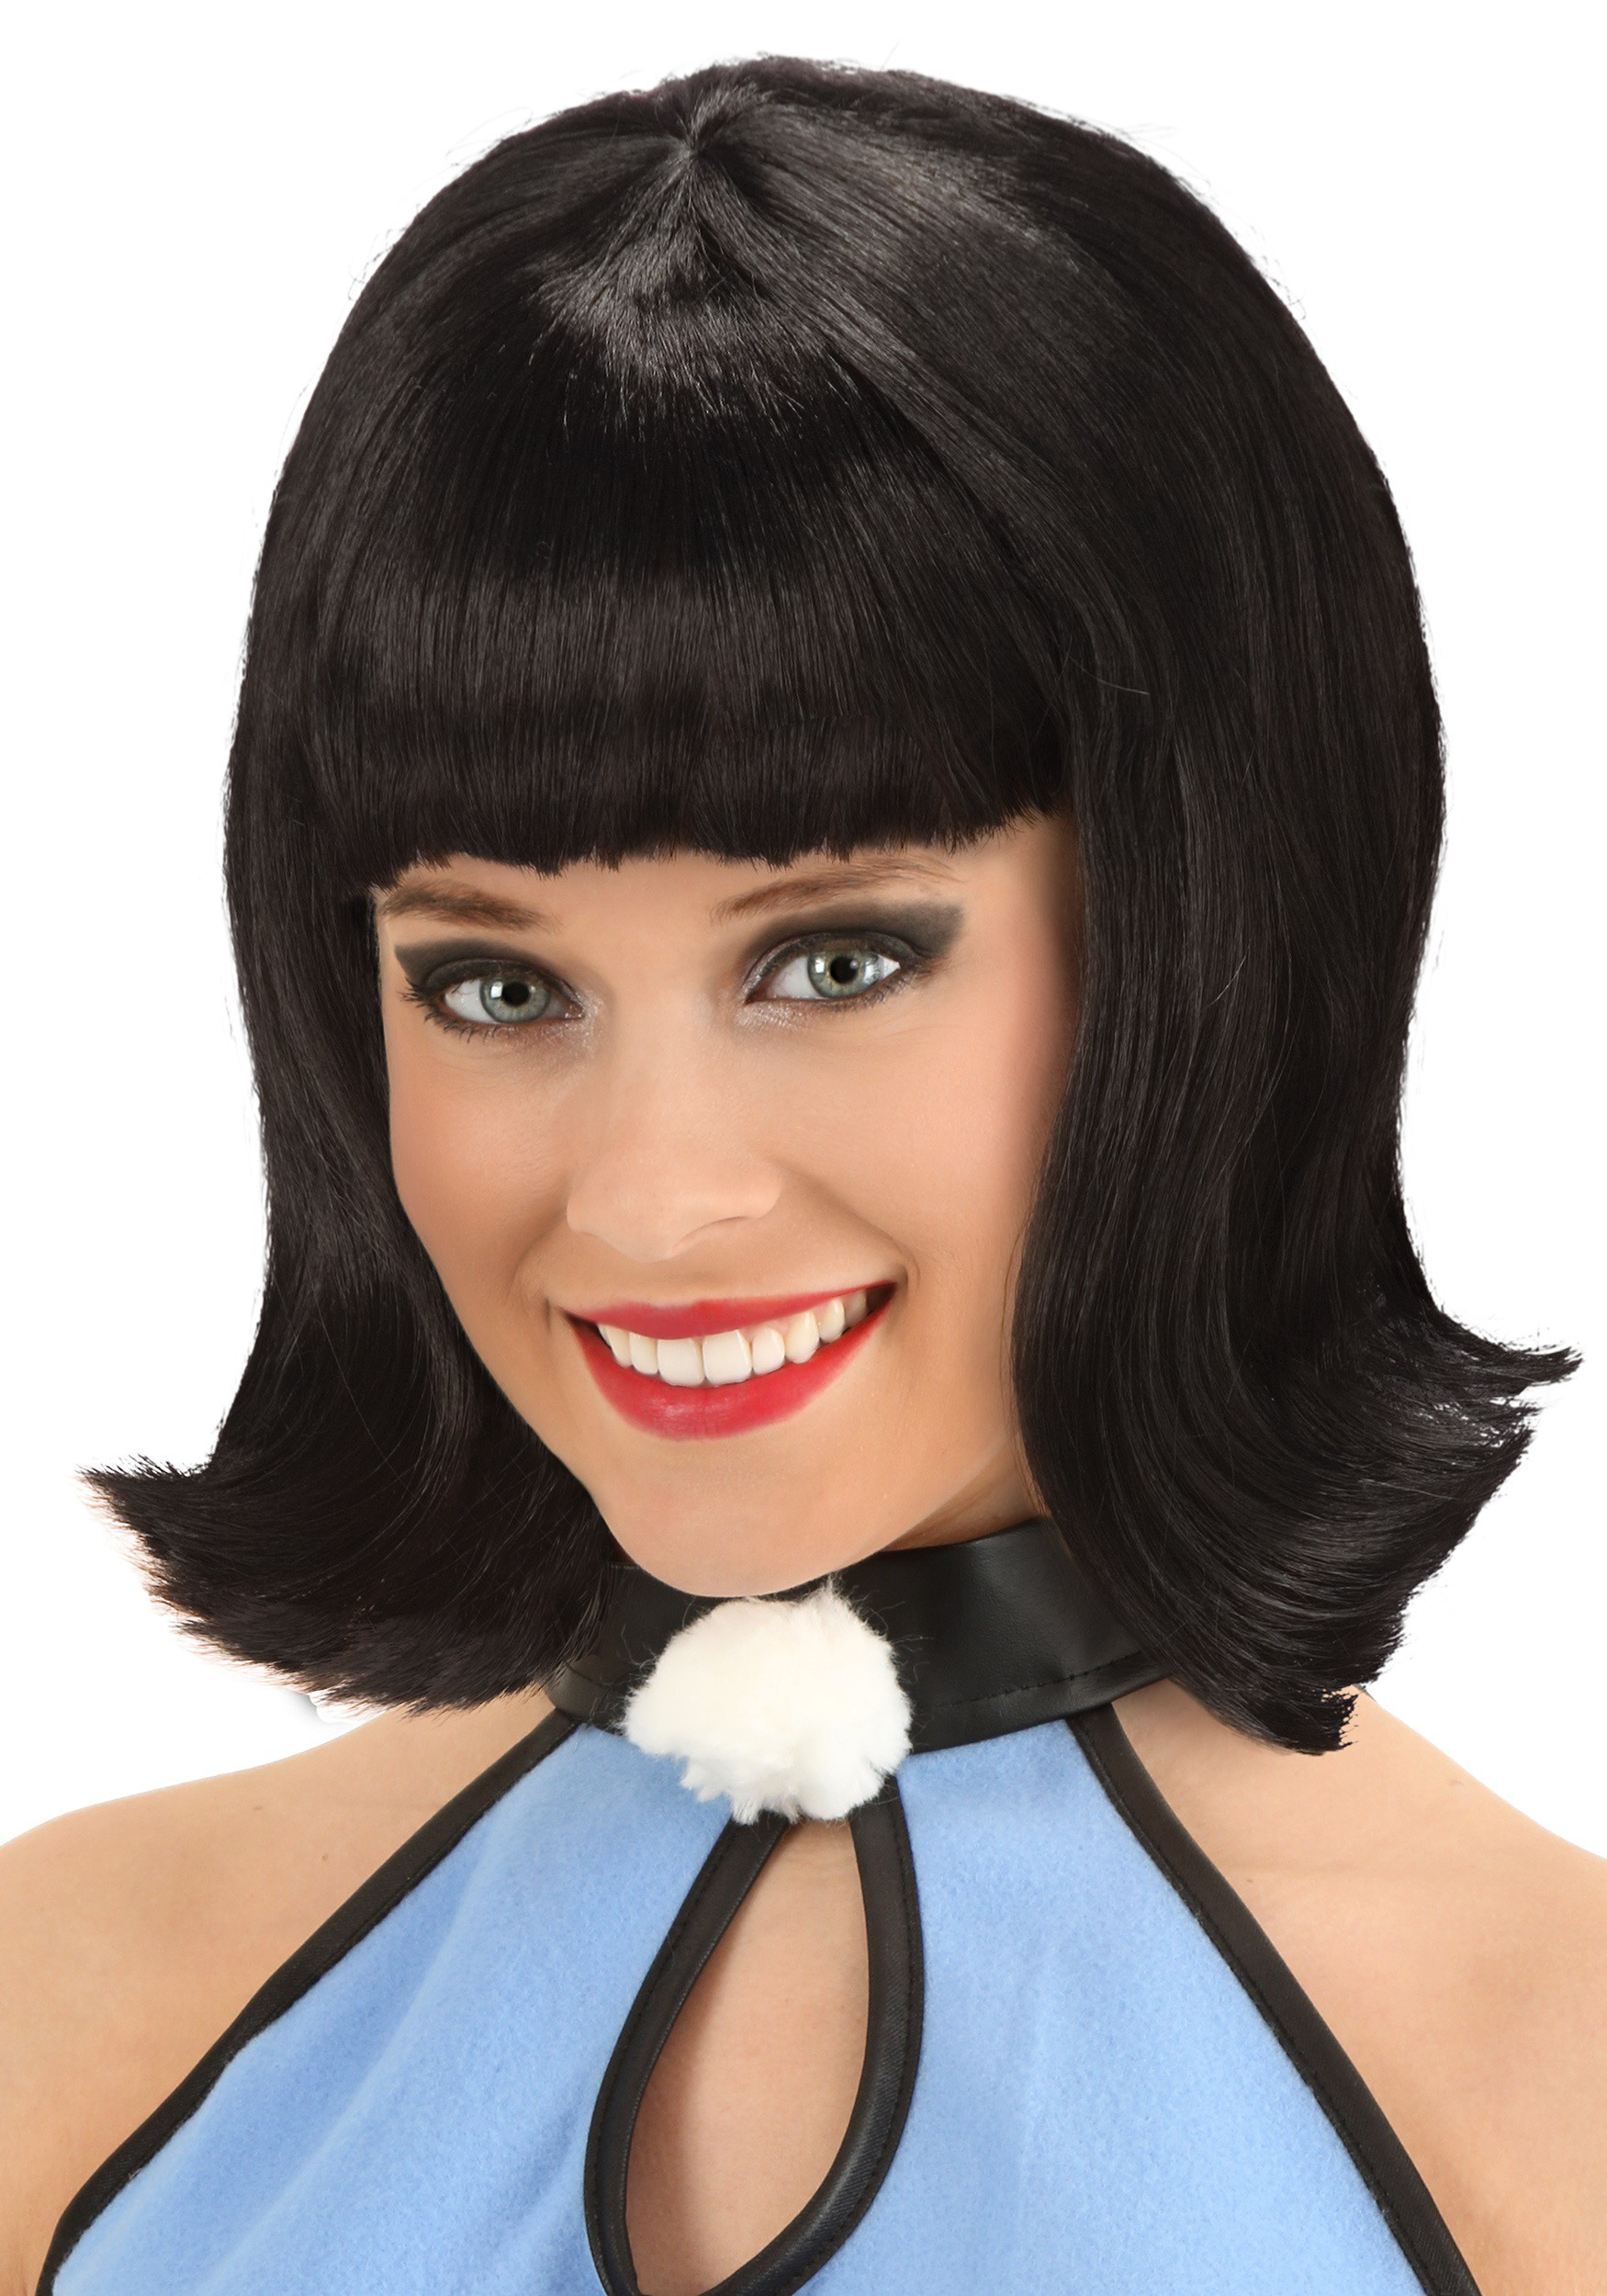 Taking a Look at Some of the Latest Halloween Wigs and Costumes